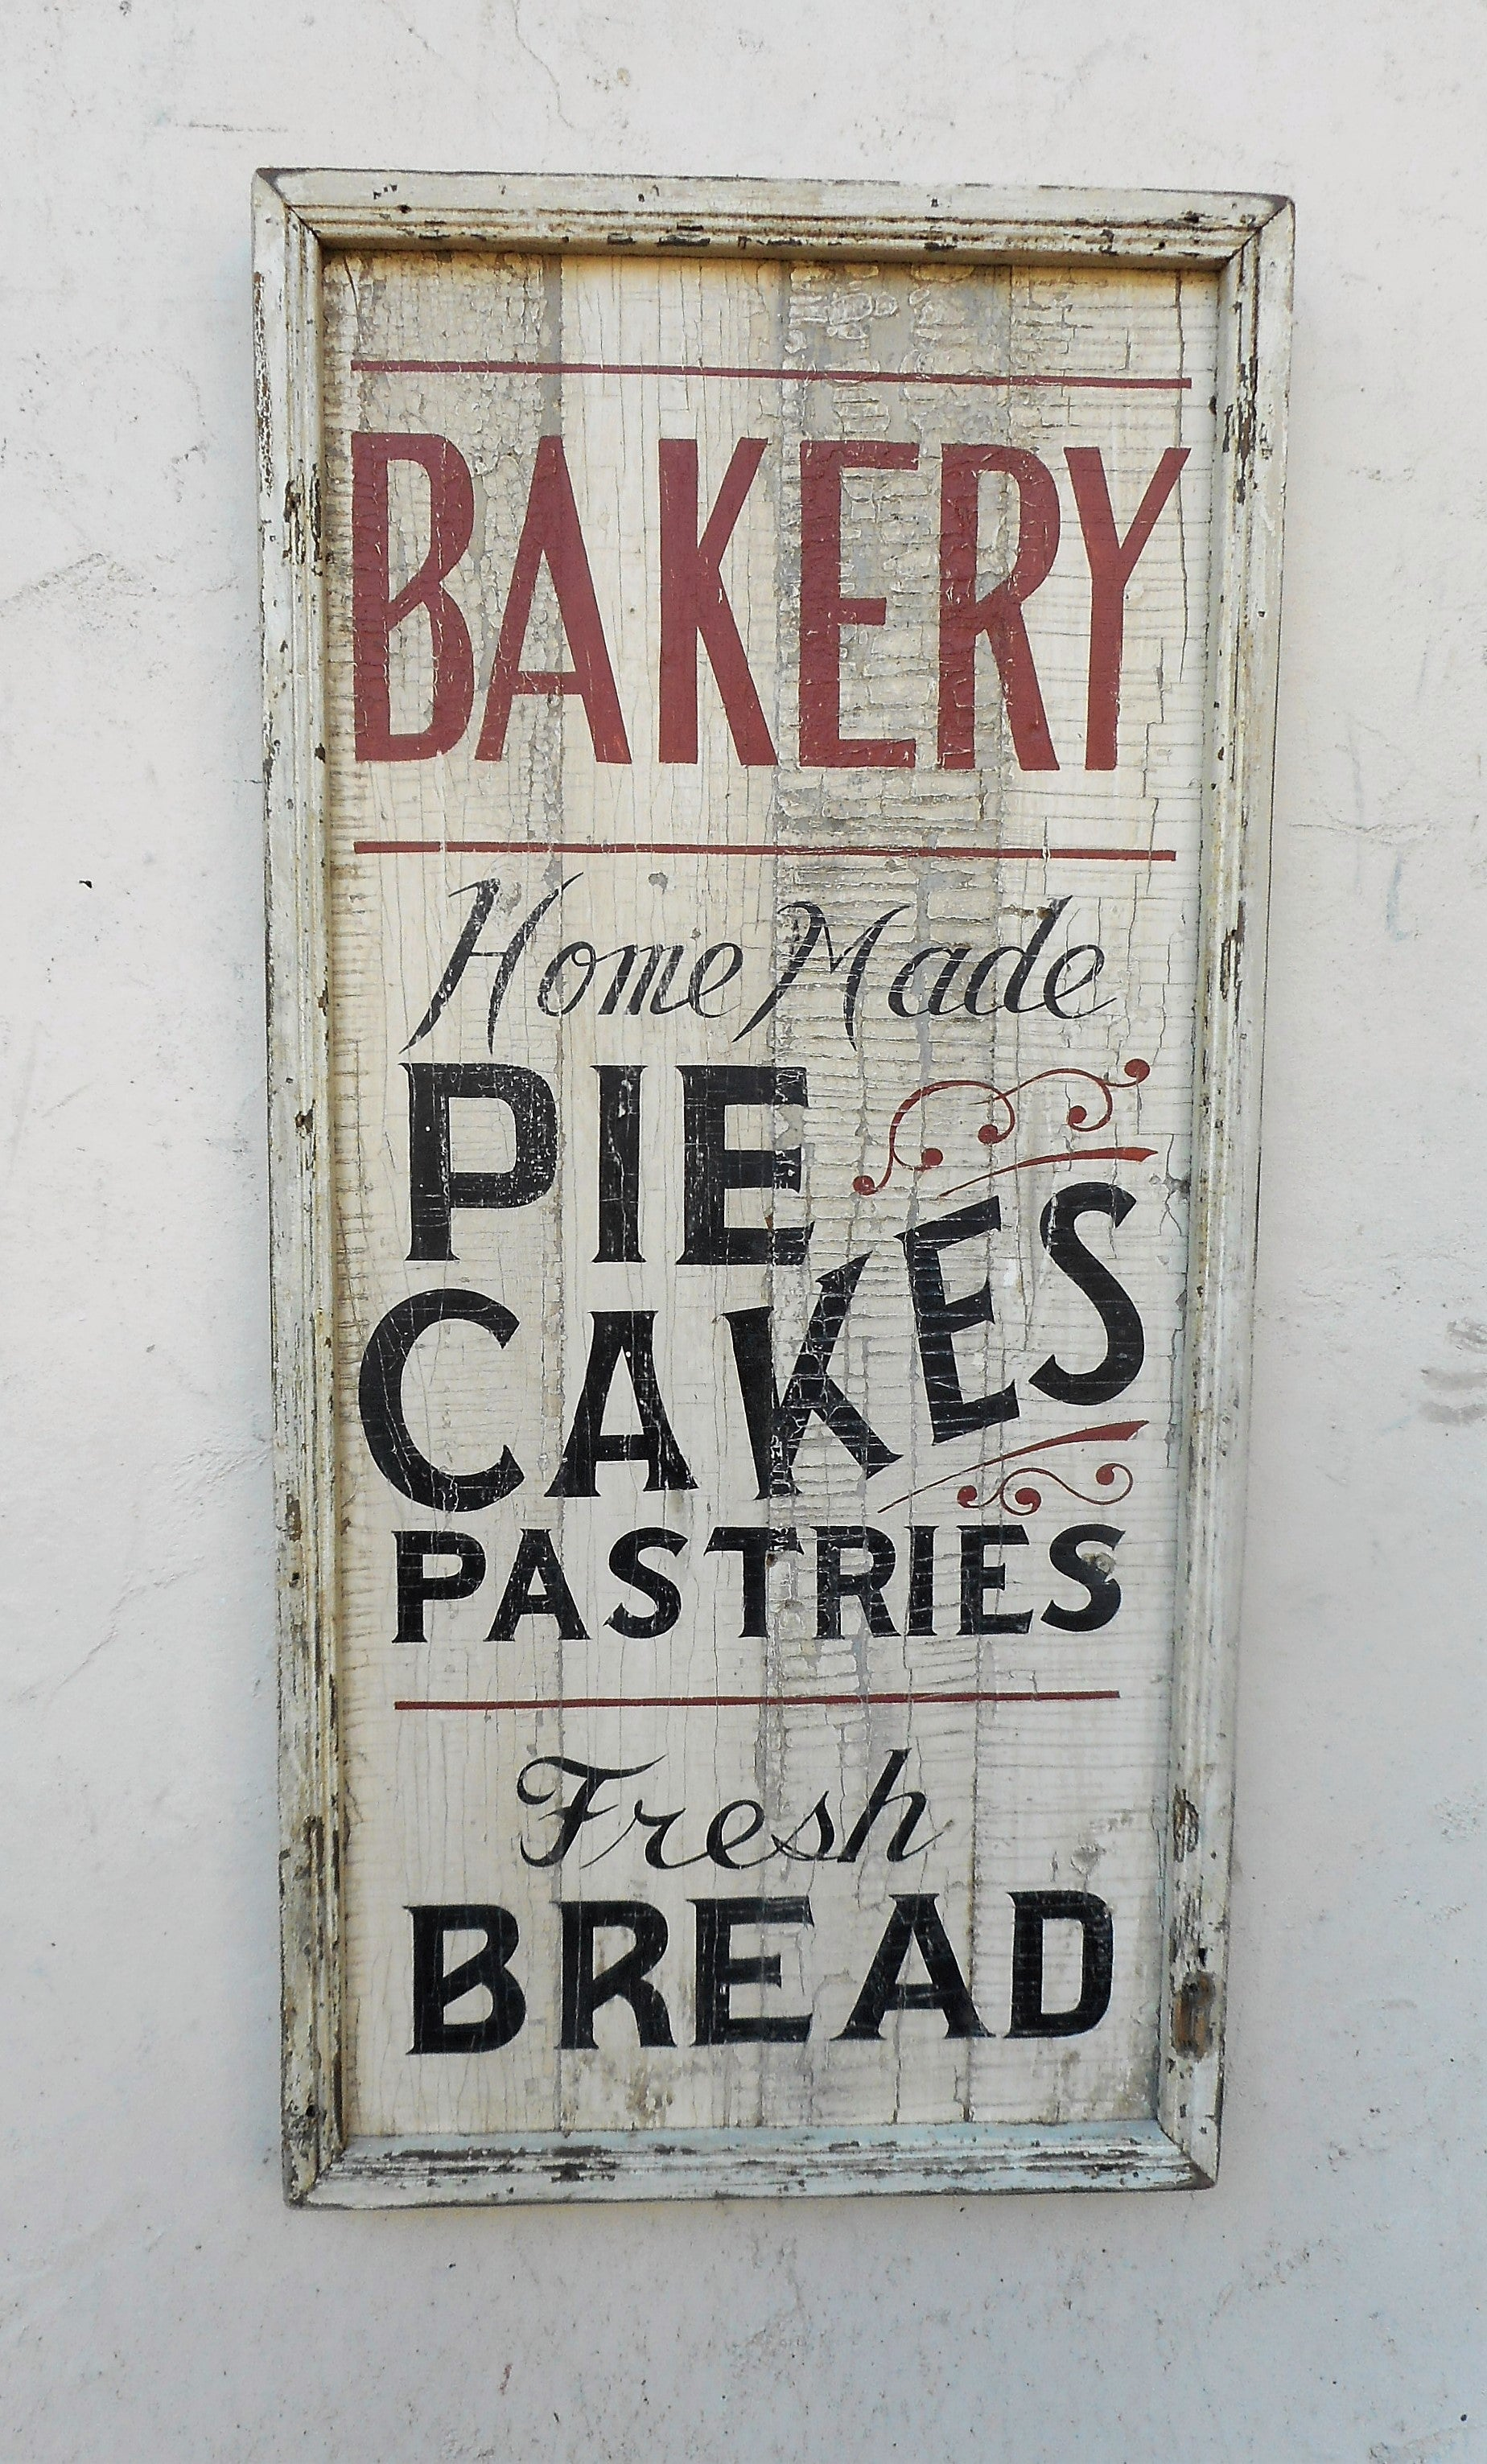 Vertical Bakery sign